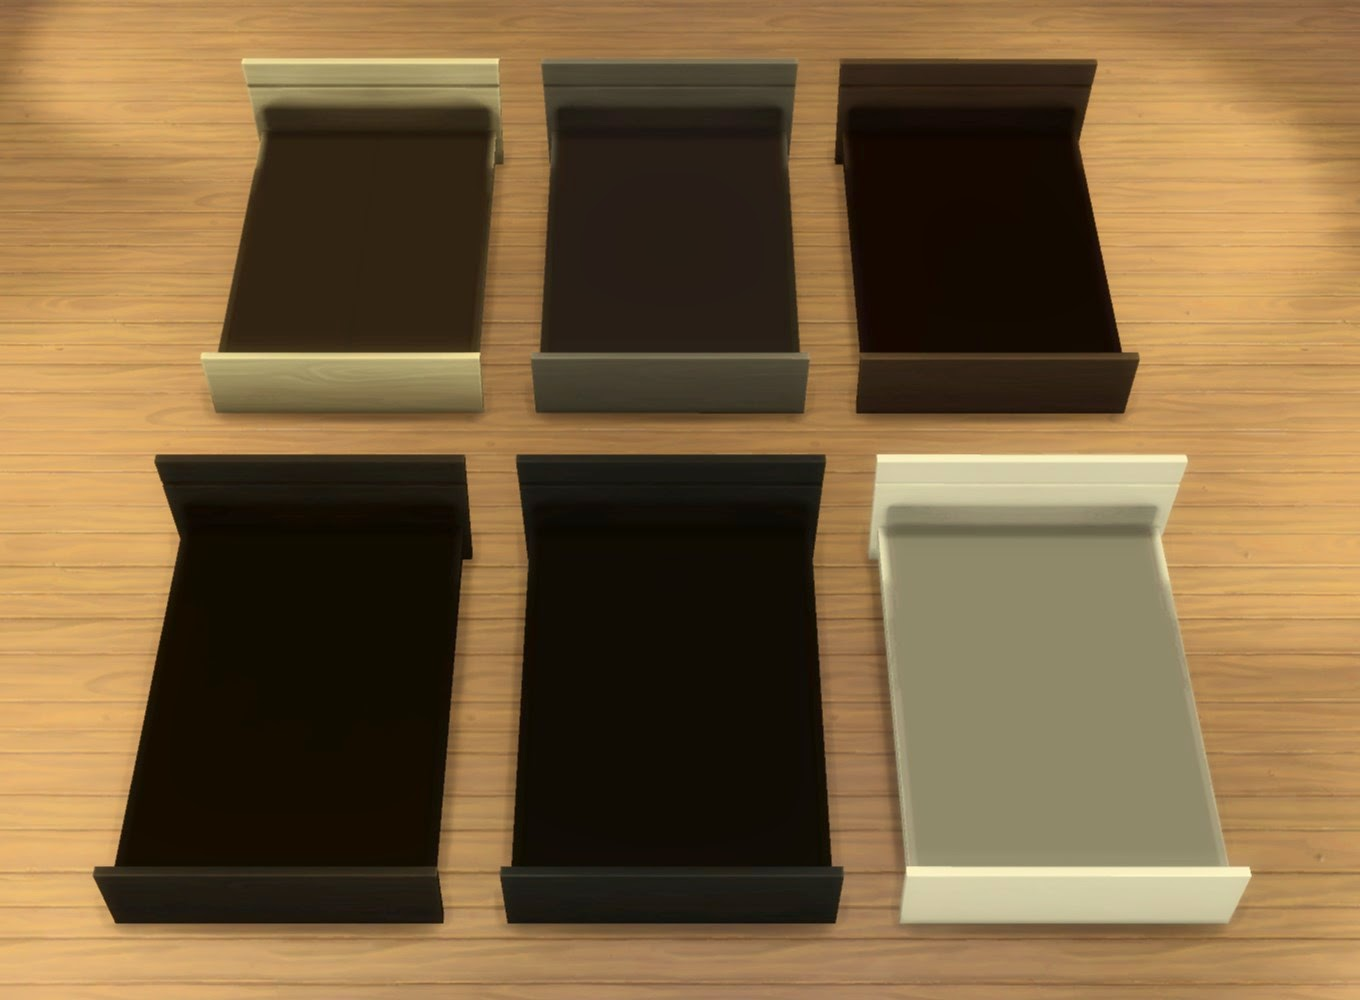 My Sims 4 Blog: ModPod/TeenDreams Bed Frames by plasticbox